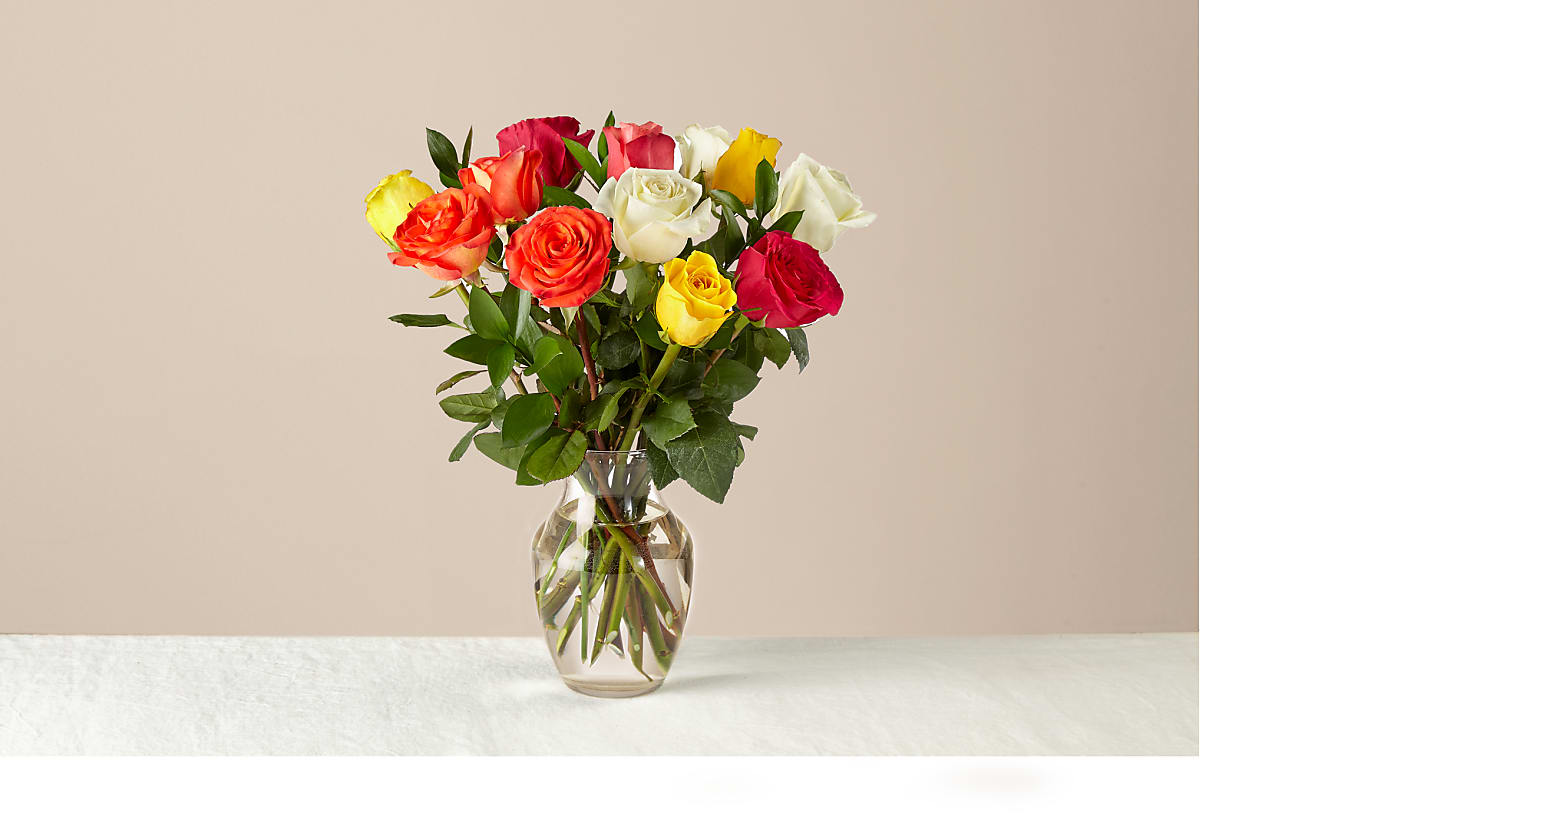 Mixed Roses with Vase - Image 1 Of 4